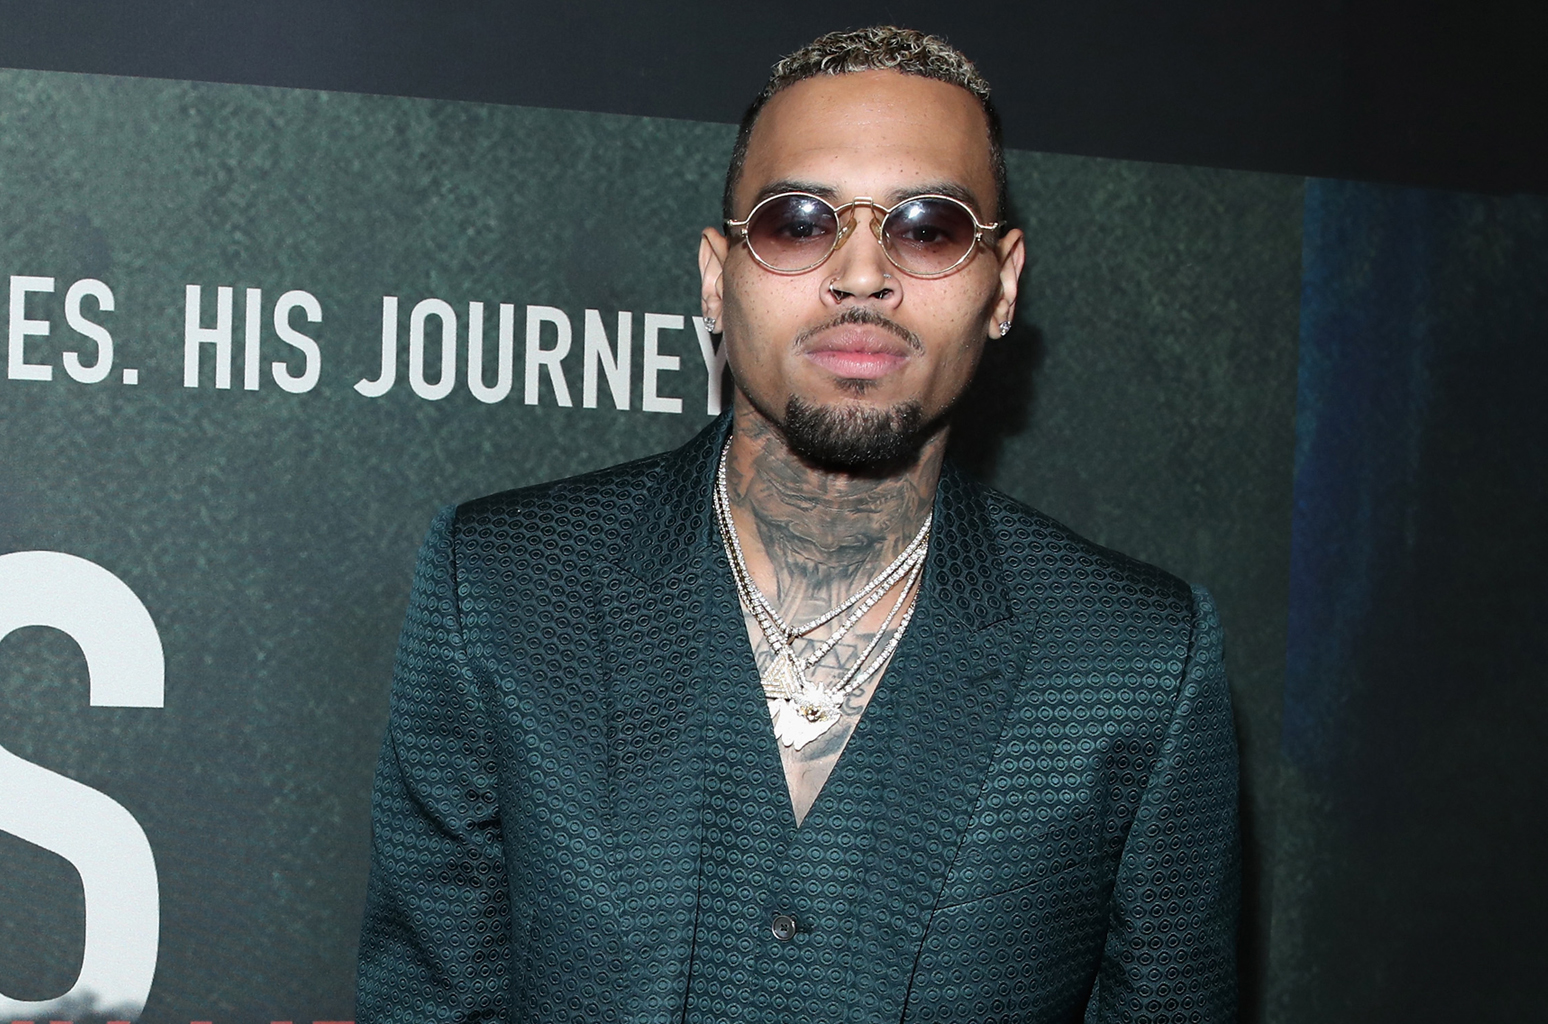 Chris Brown Is Labeled As 'King Petty' After His Clothing Company 'Black Pyramid' Sells These Shirts